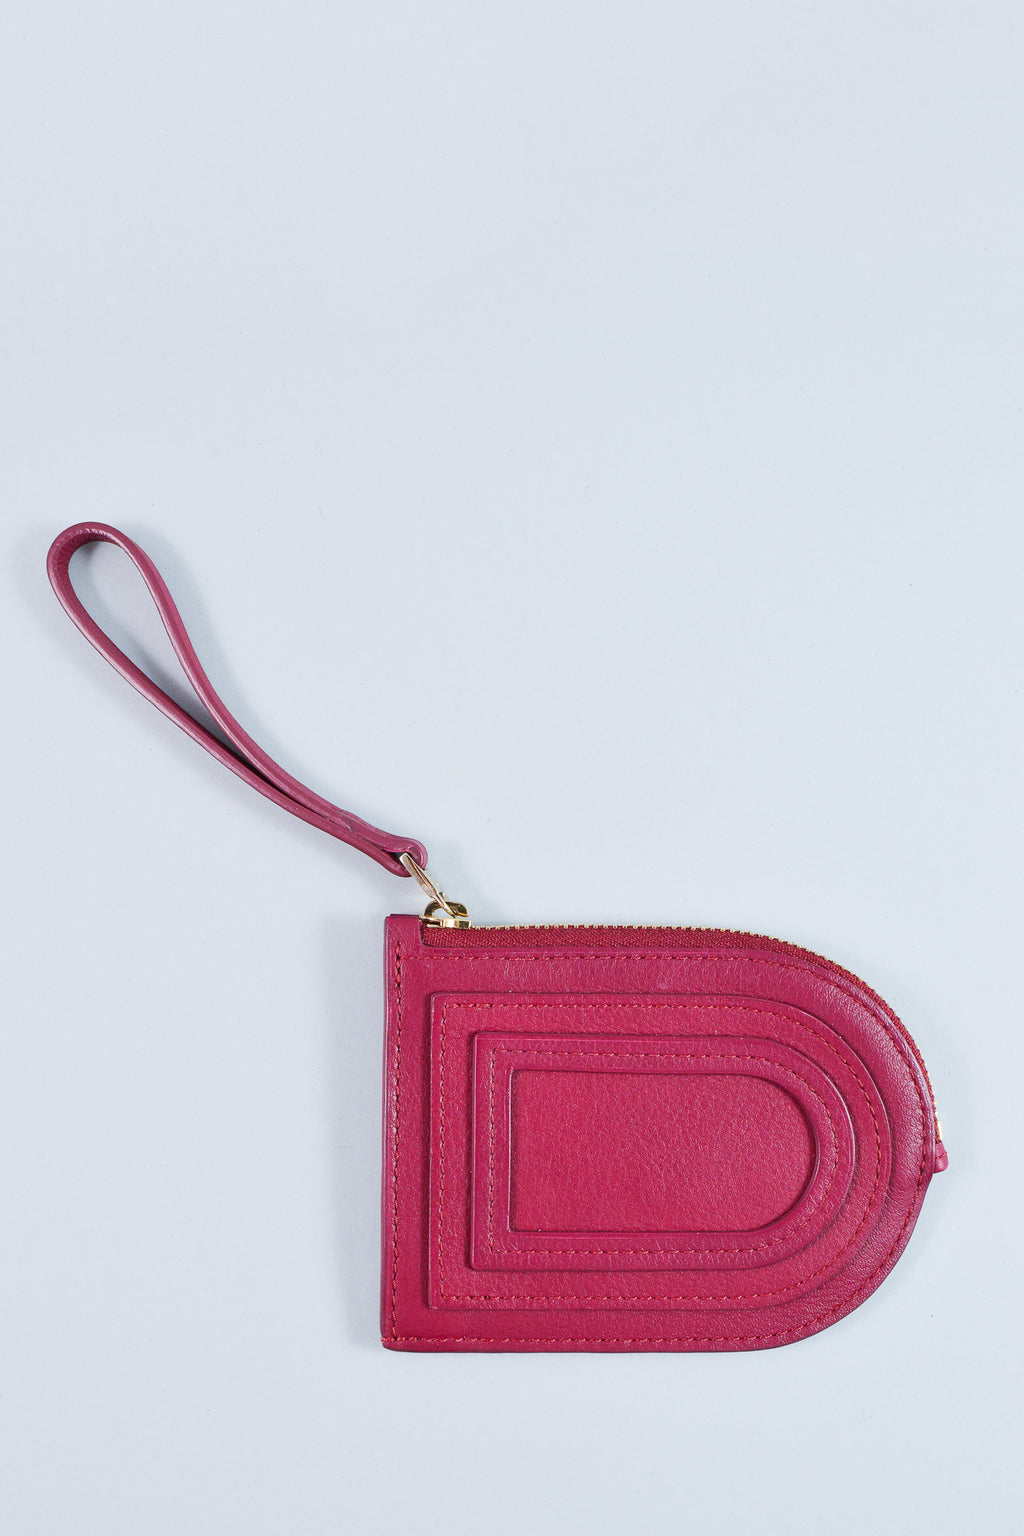 Delvaux Magenta Leather Zip Coin Purse